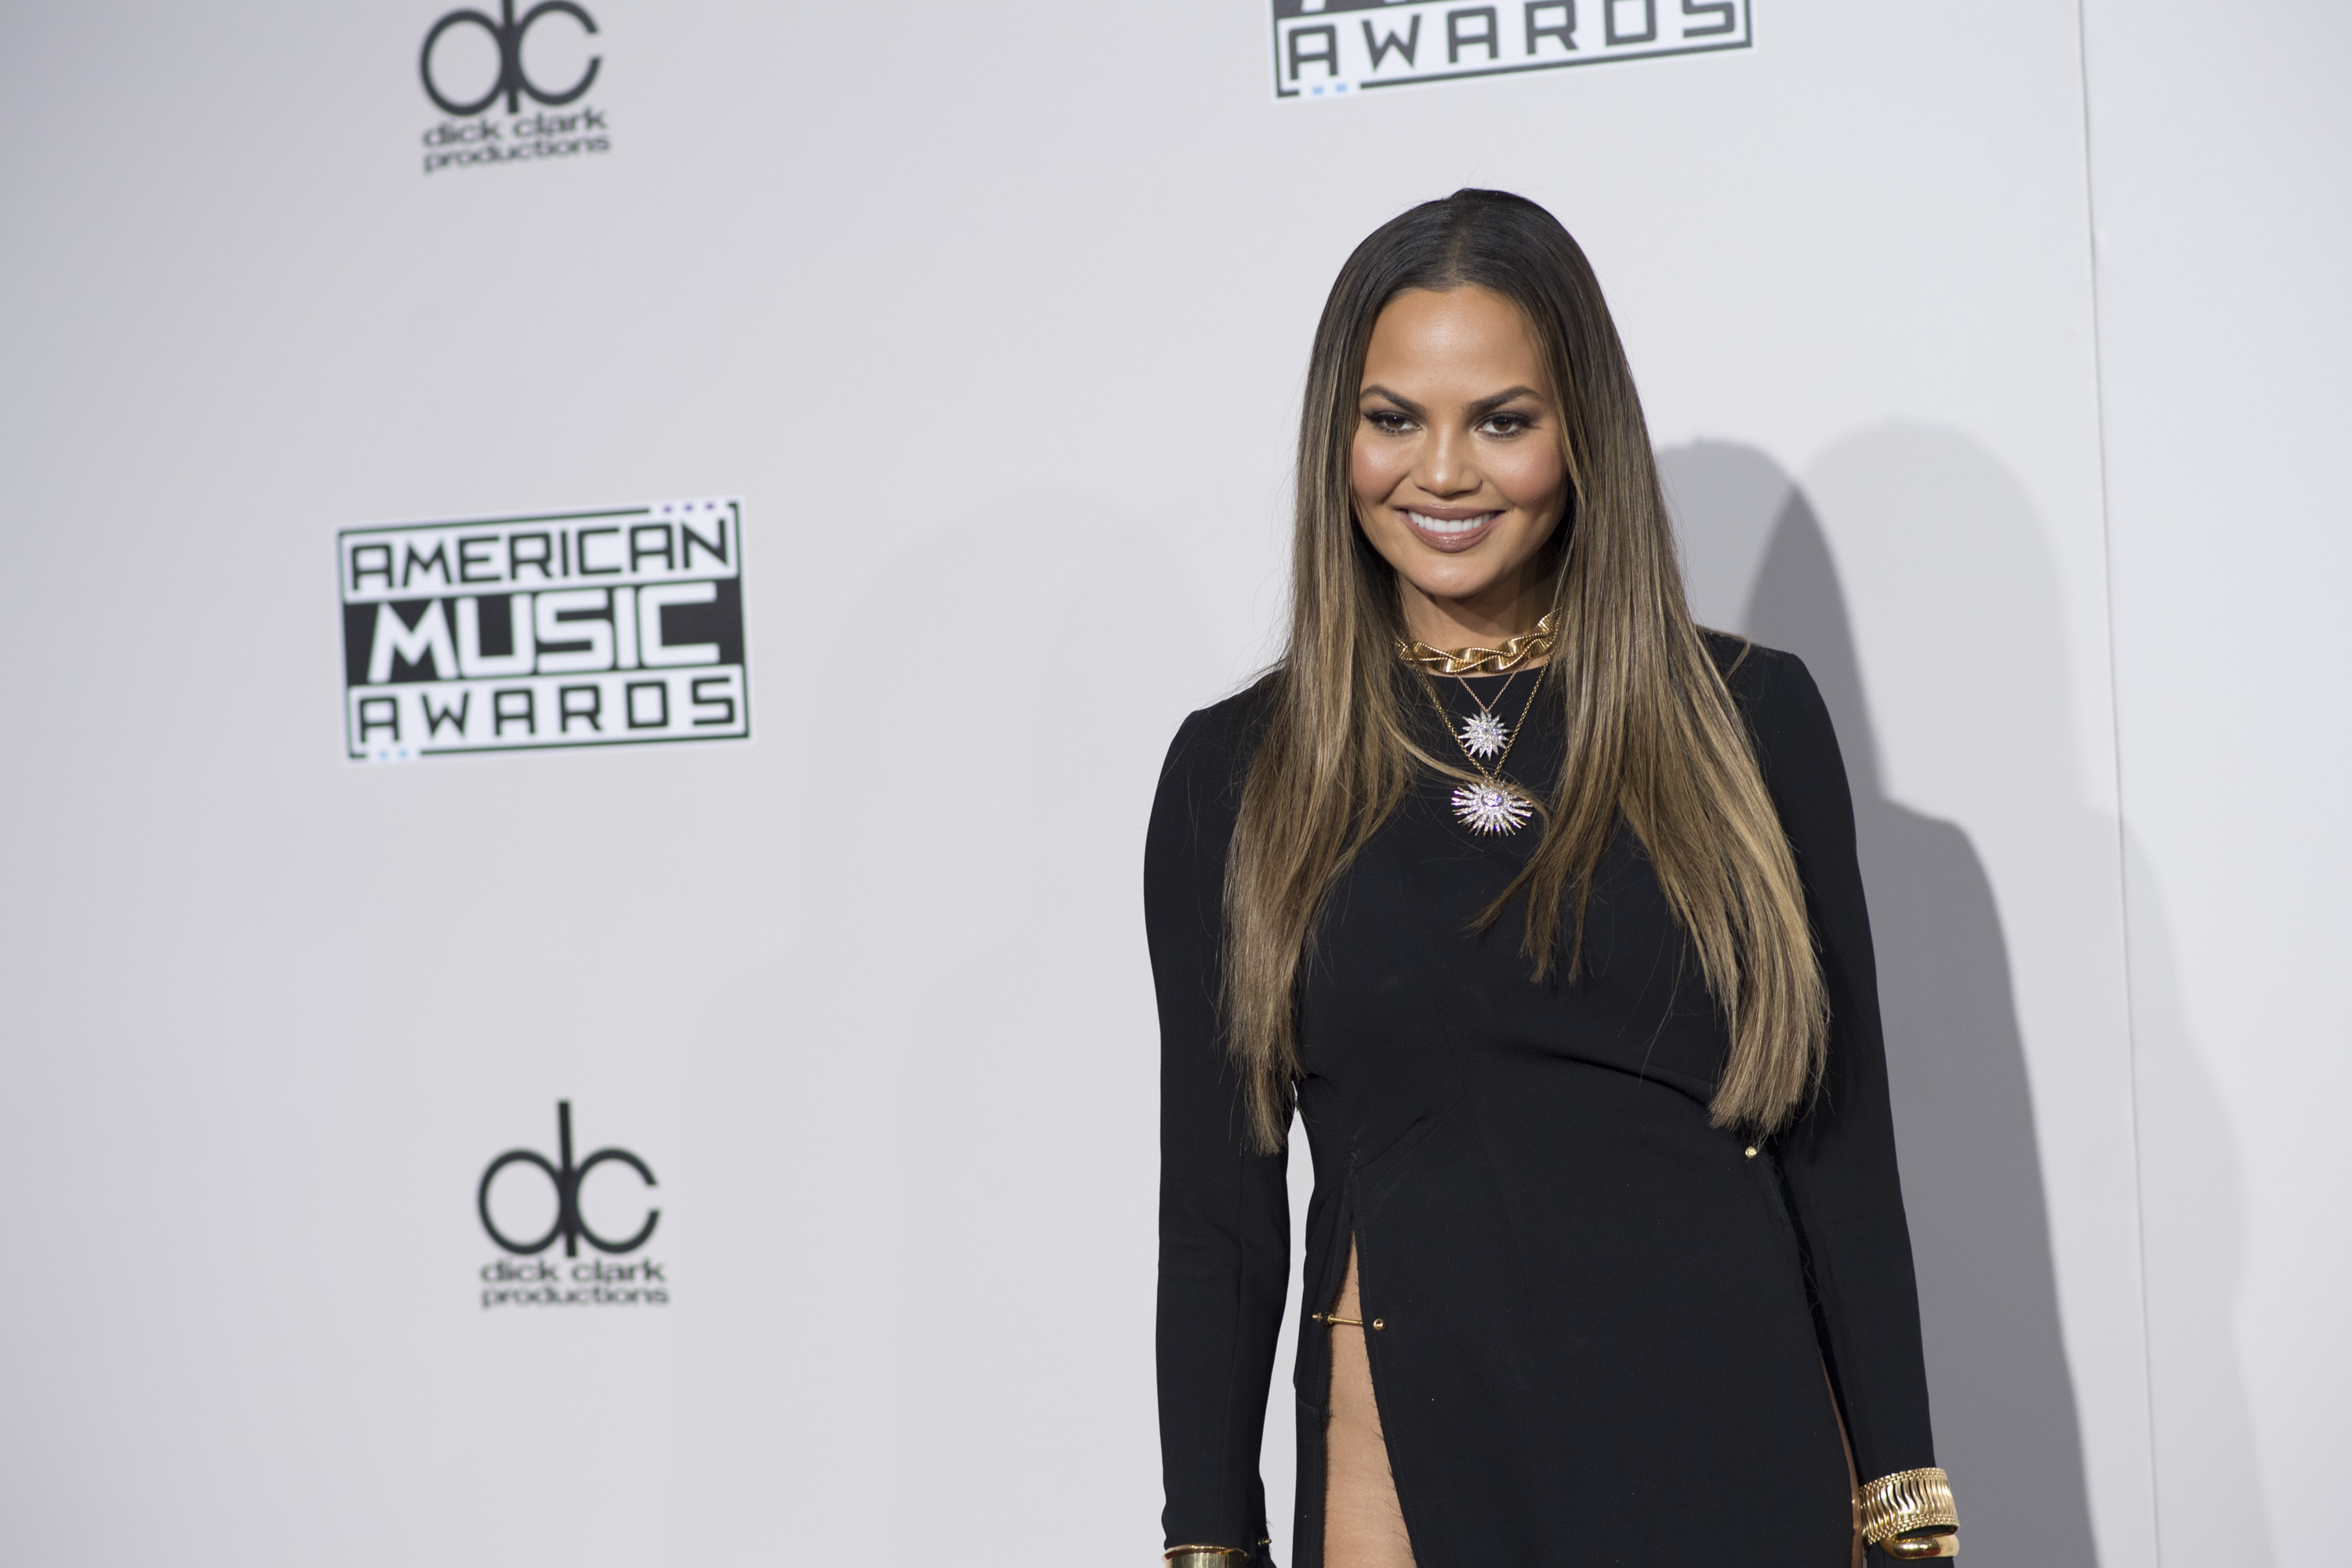 Chrissy Teigen had the best response to a Twitter troll who commented on her pubic hair, and we're cheering